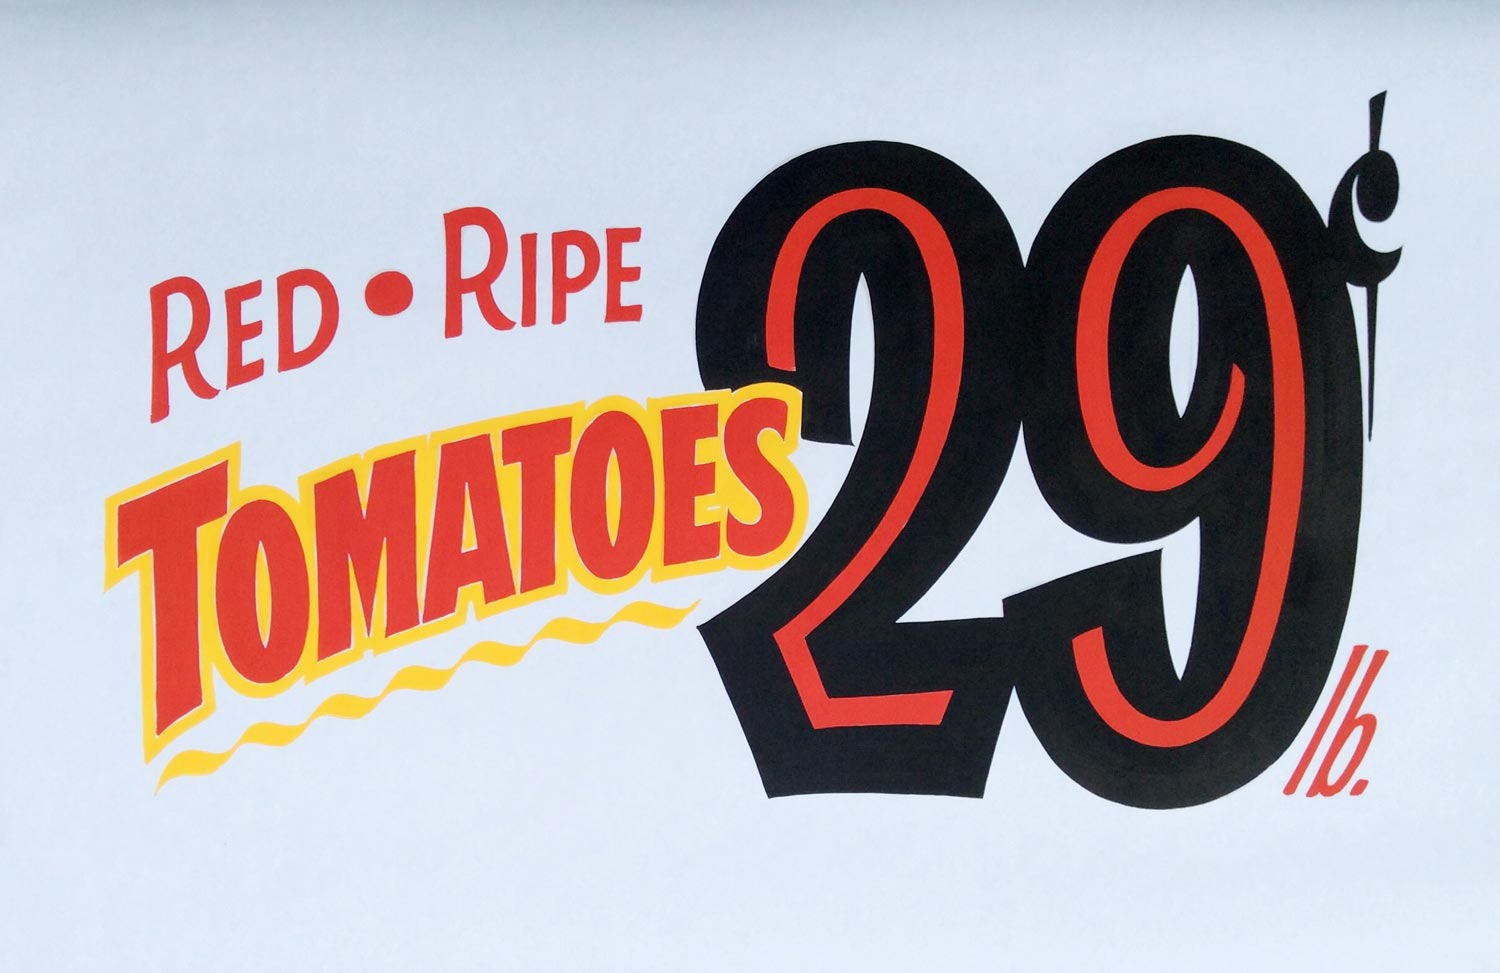 Hand-painted ad for tomatoes